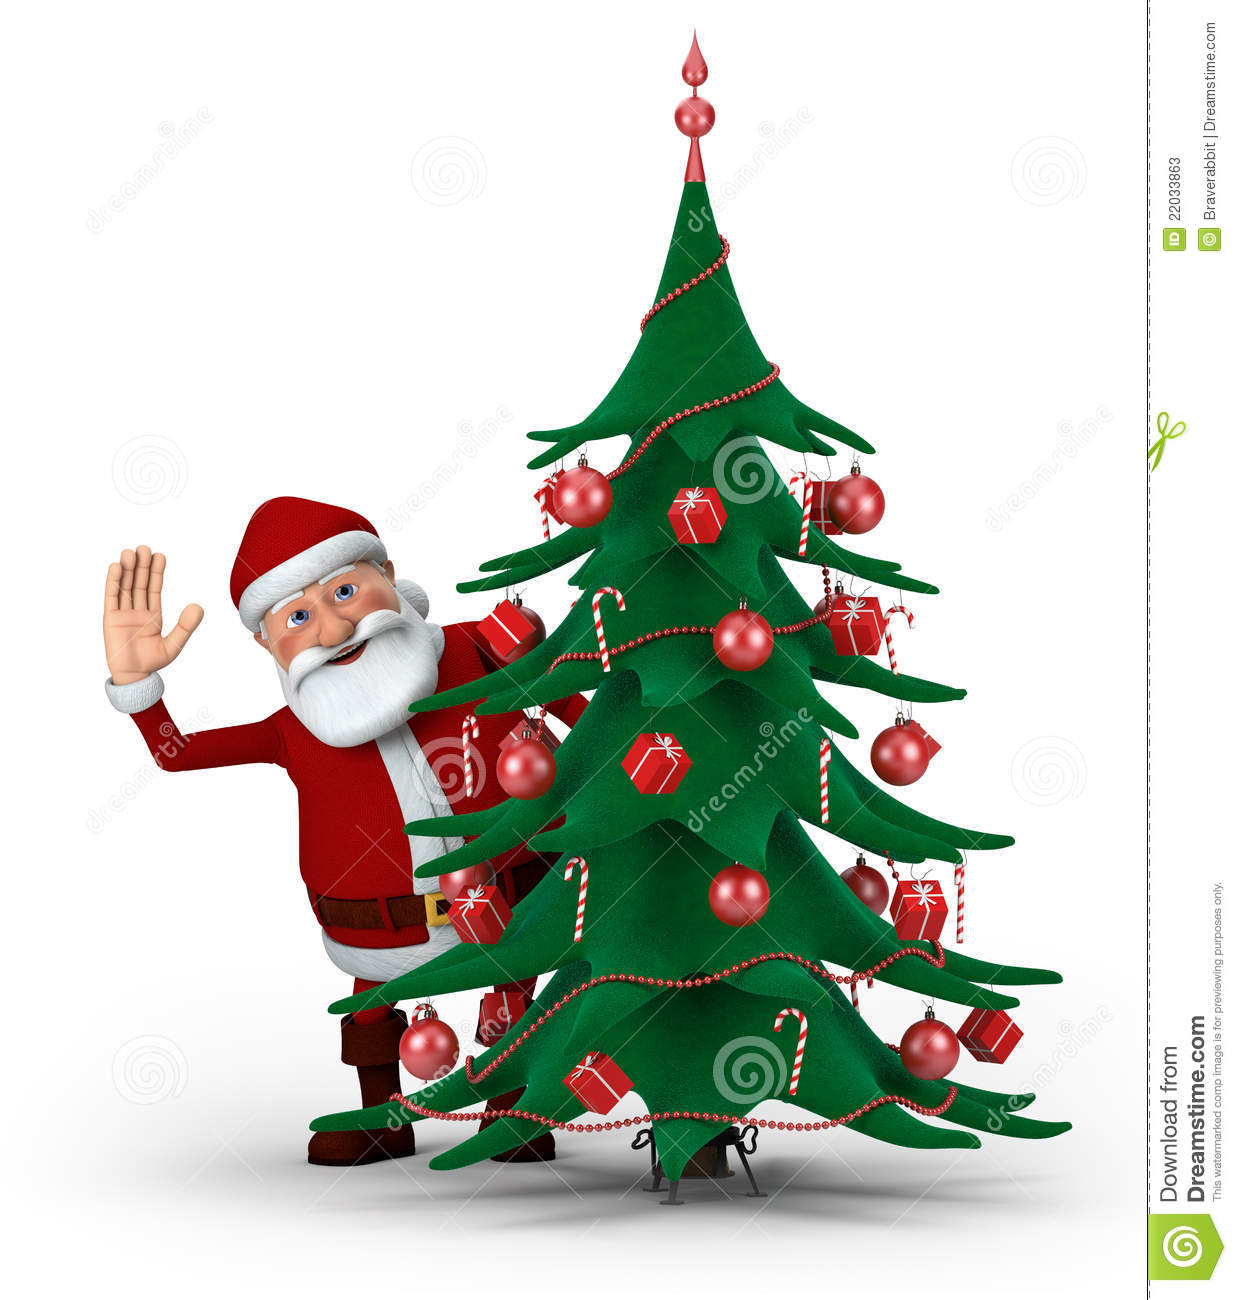 Story Behind Christmas Tree: Santa Behind Christmas Tree Stock Illustration